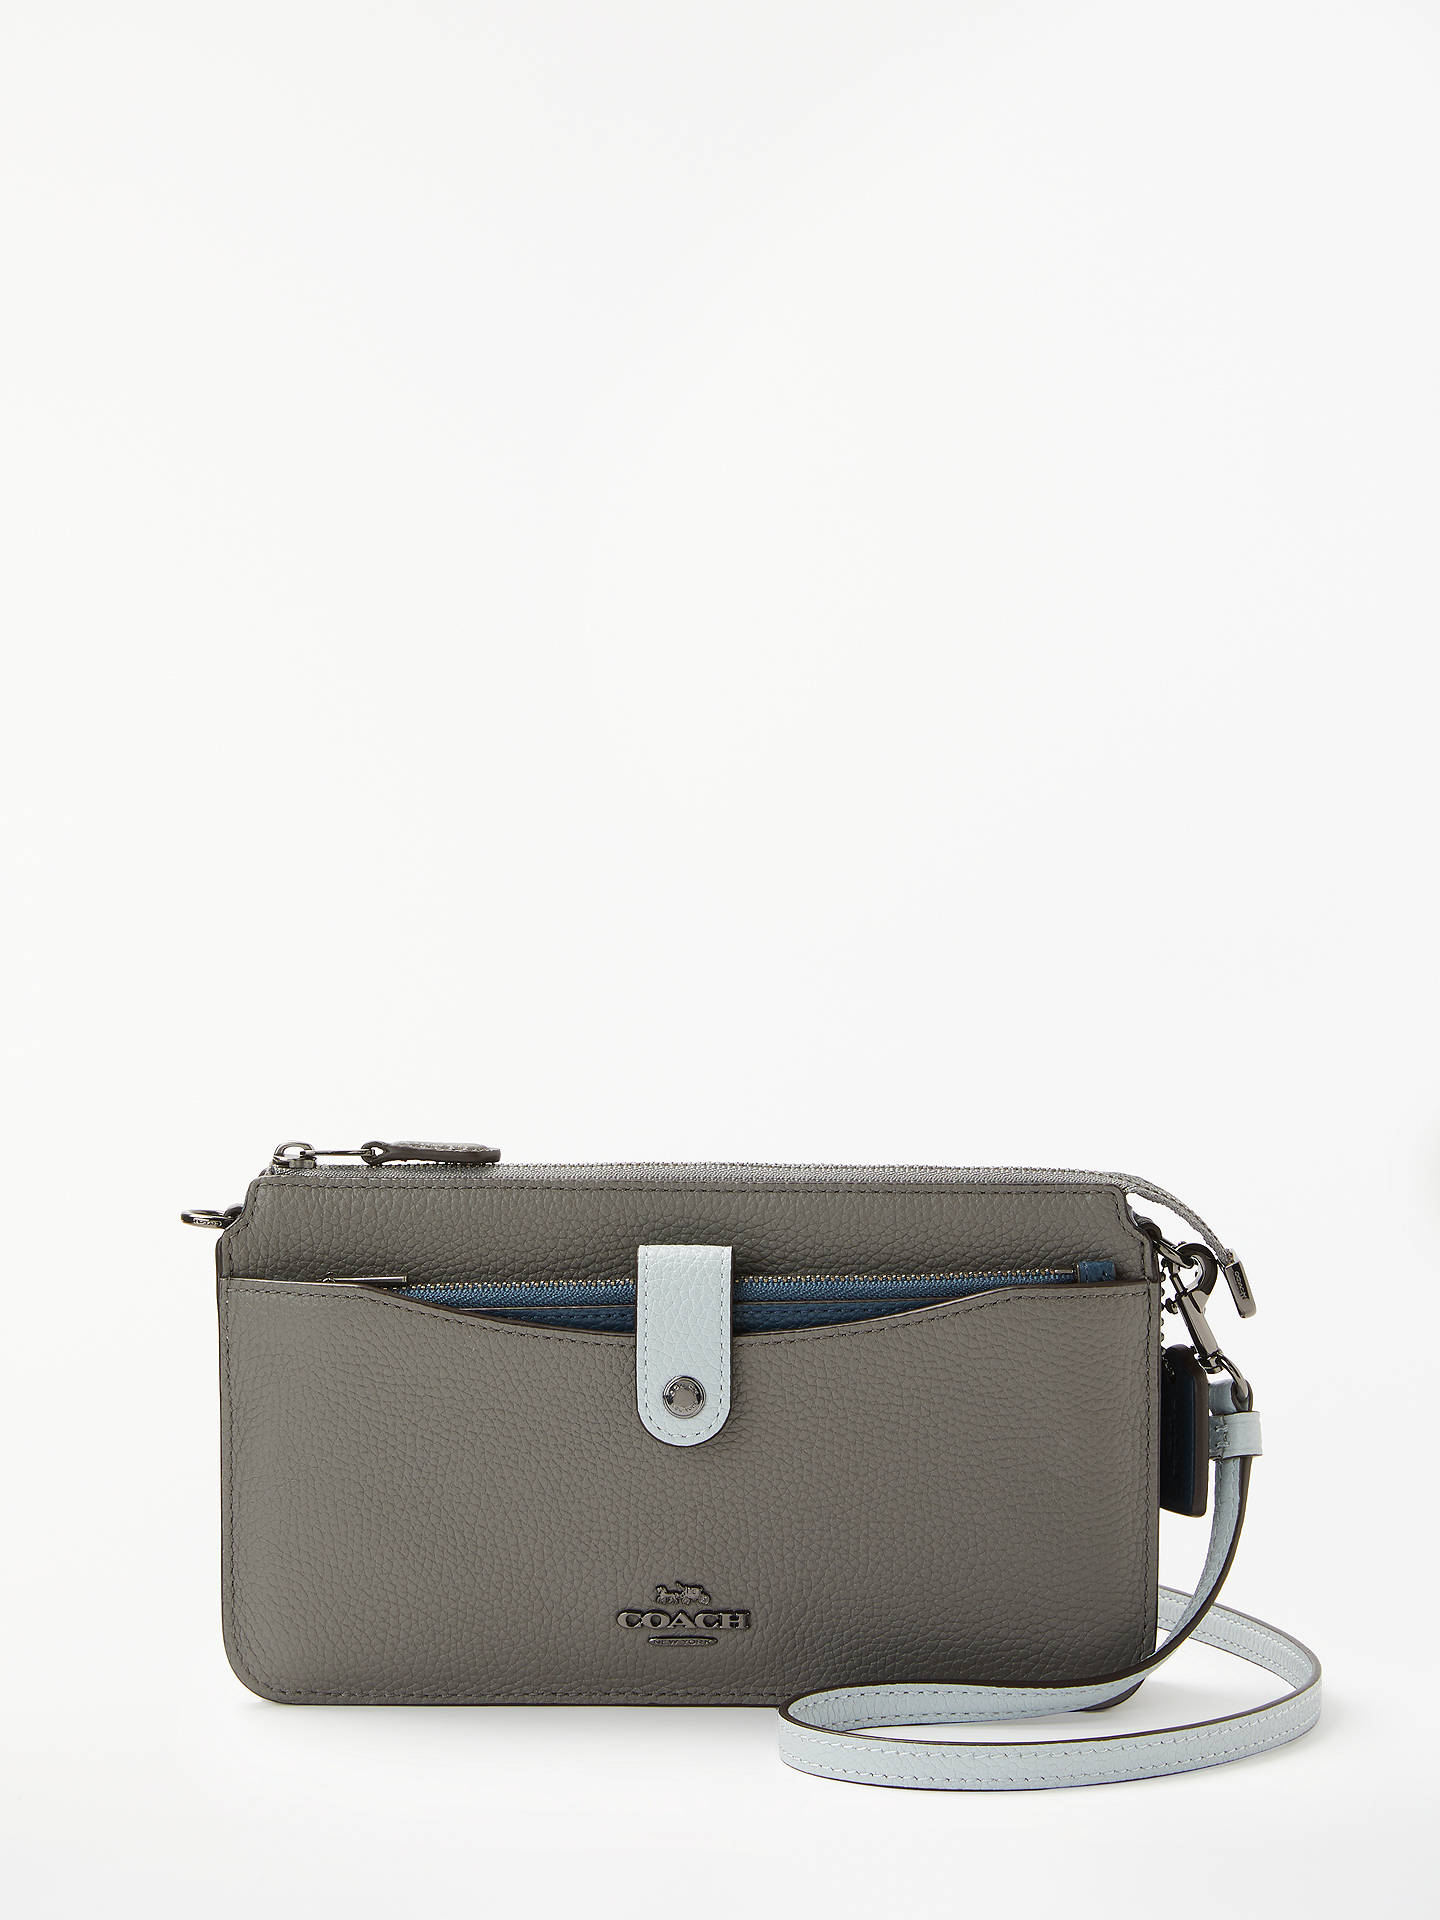 d6d4aa490 Buy Coach Colourblock Pop-Up Messenger Leather Cross Body Bag, Heather  Grey/Multi ...